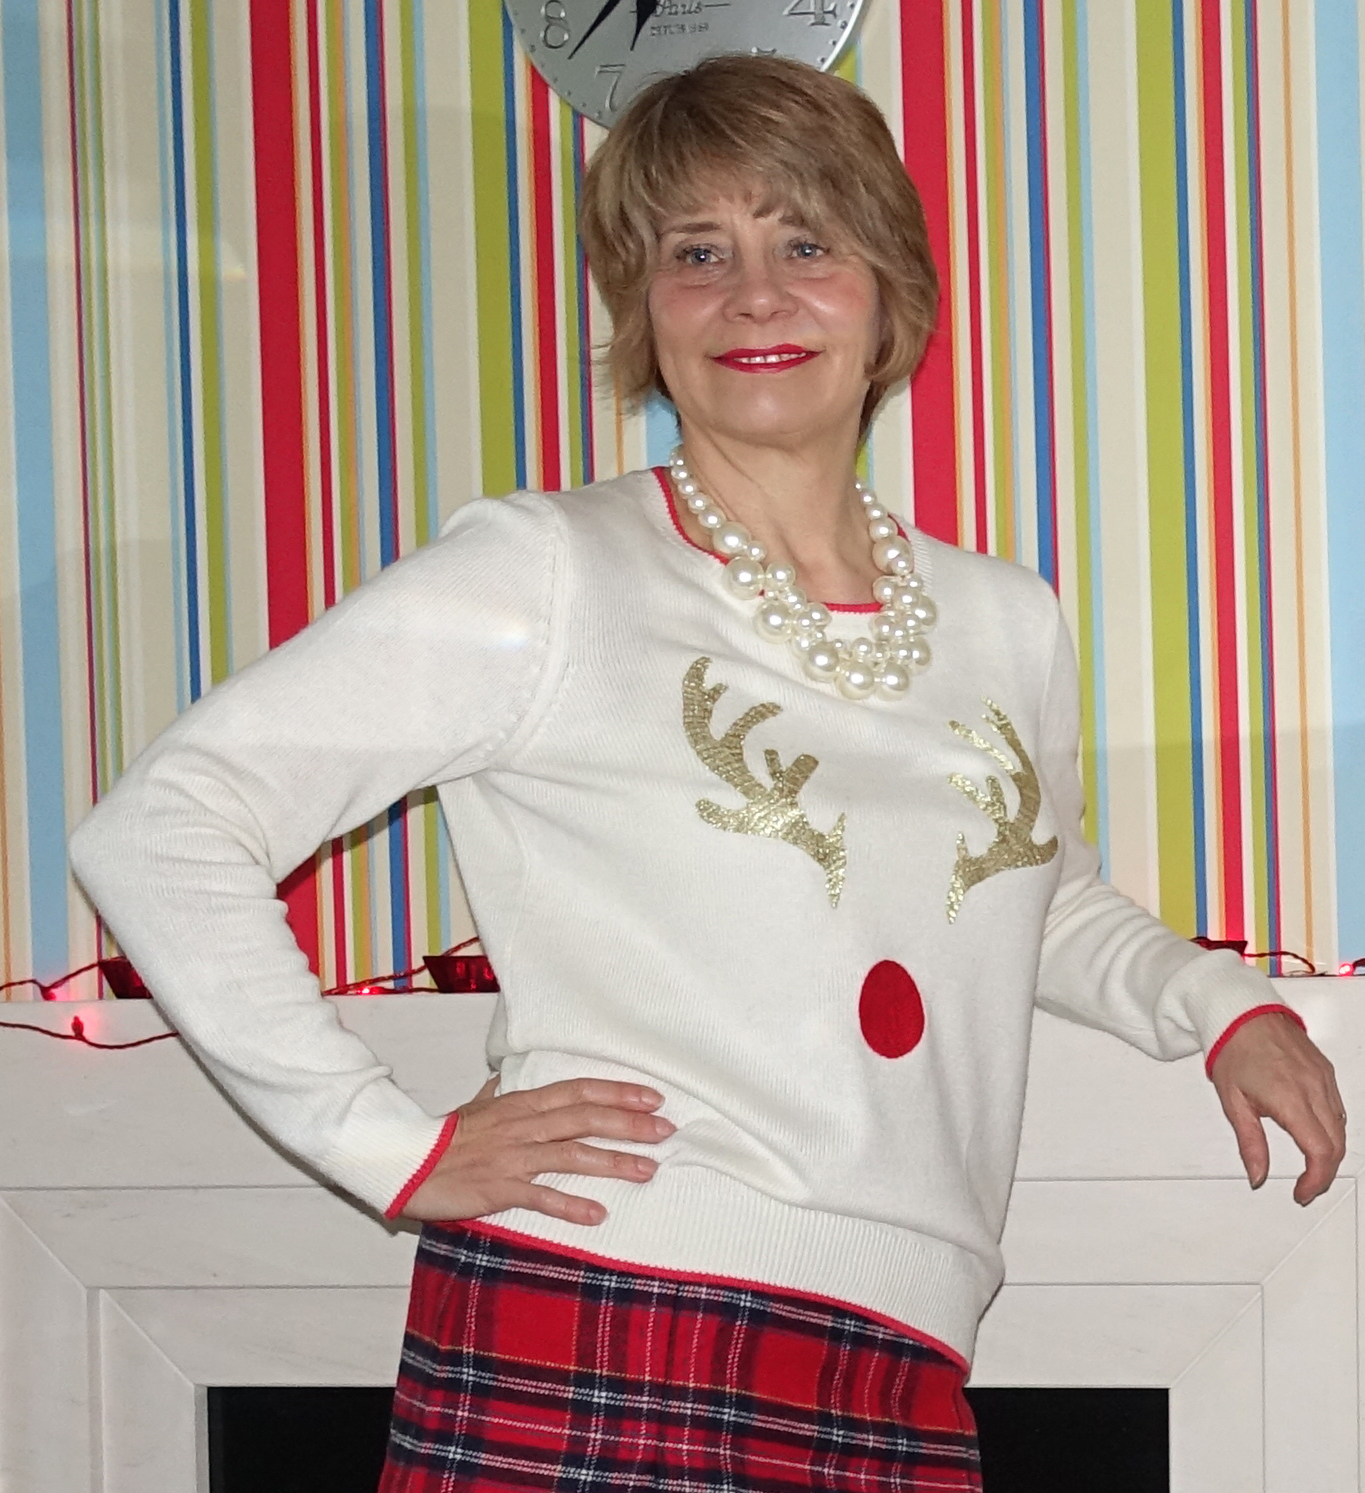 Image showing a middle aged woman indoors wearing a cream Christmas jumper embellished with reindeer antlers and a red tartan skirt